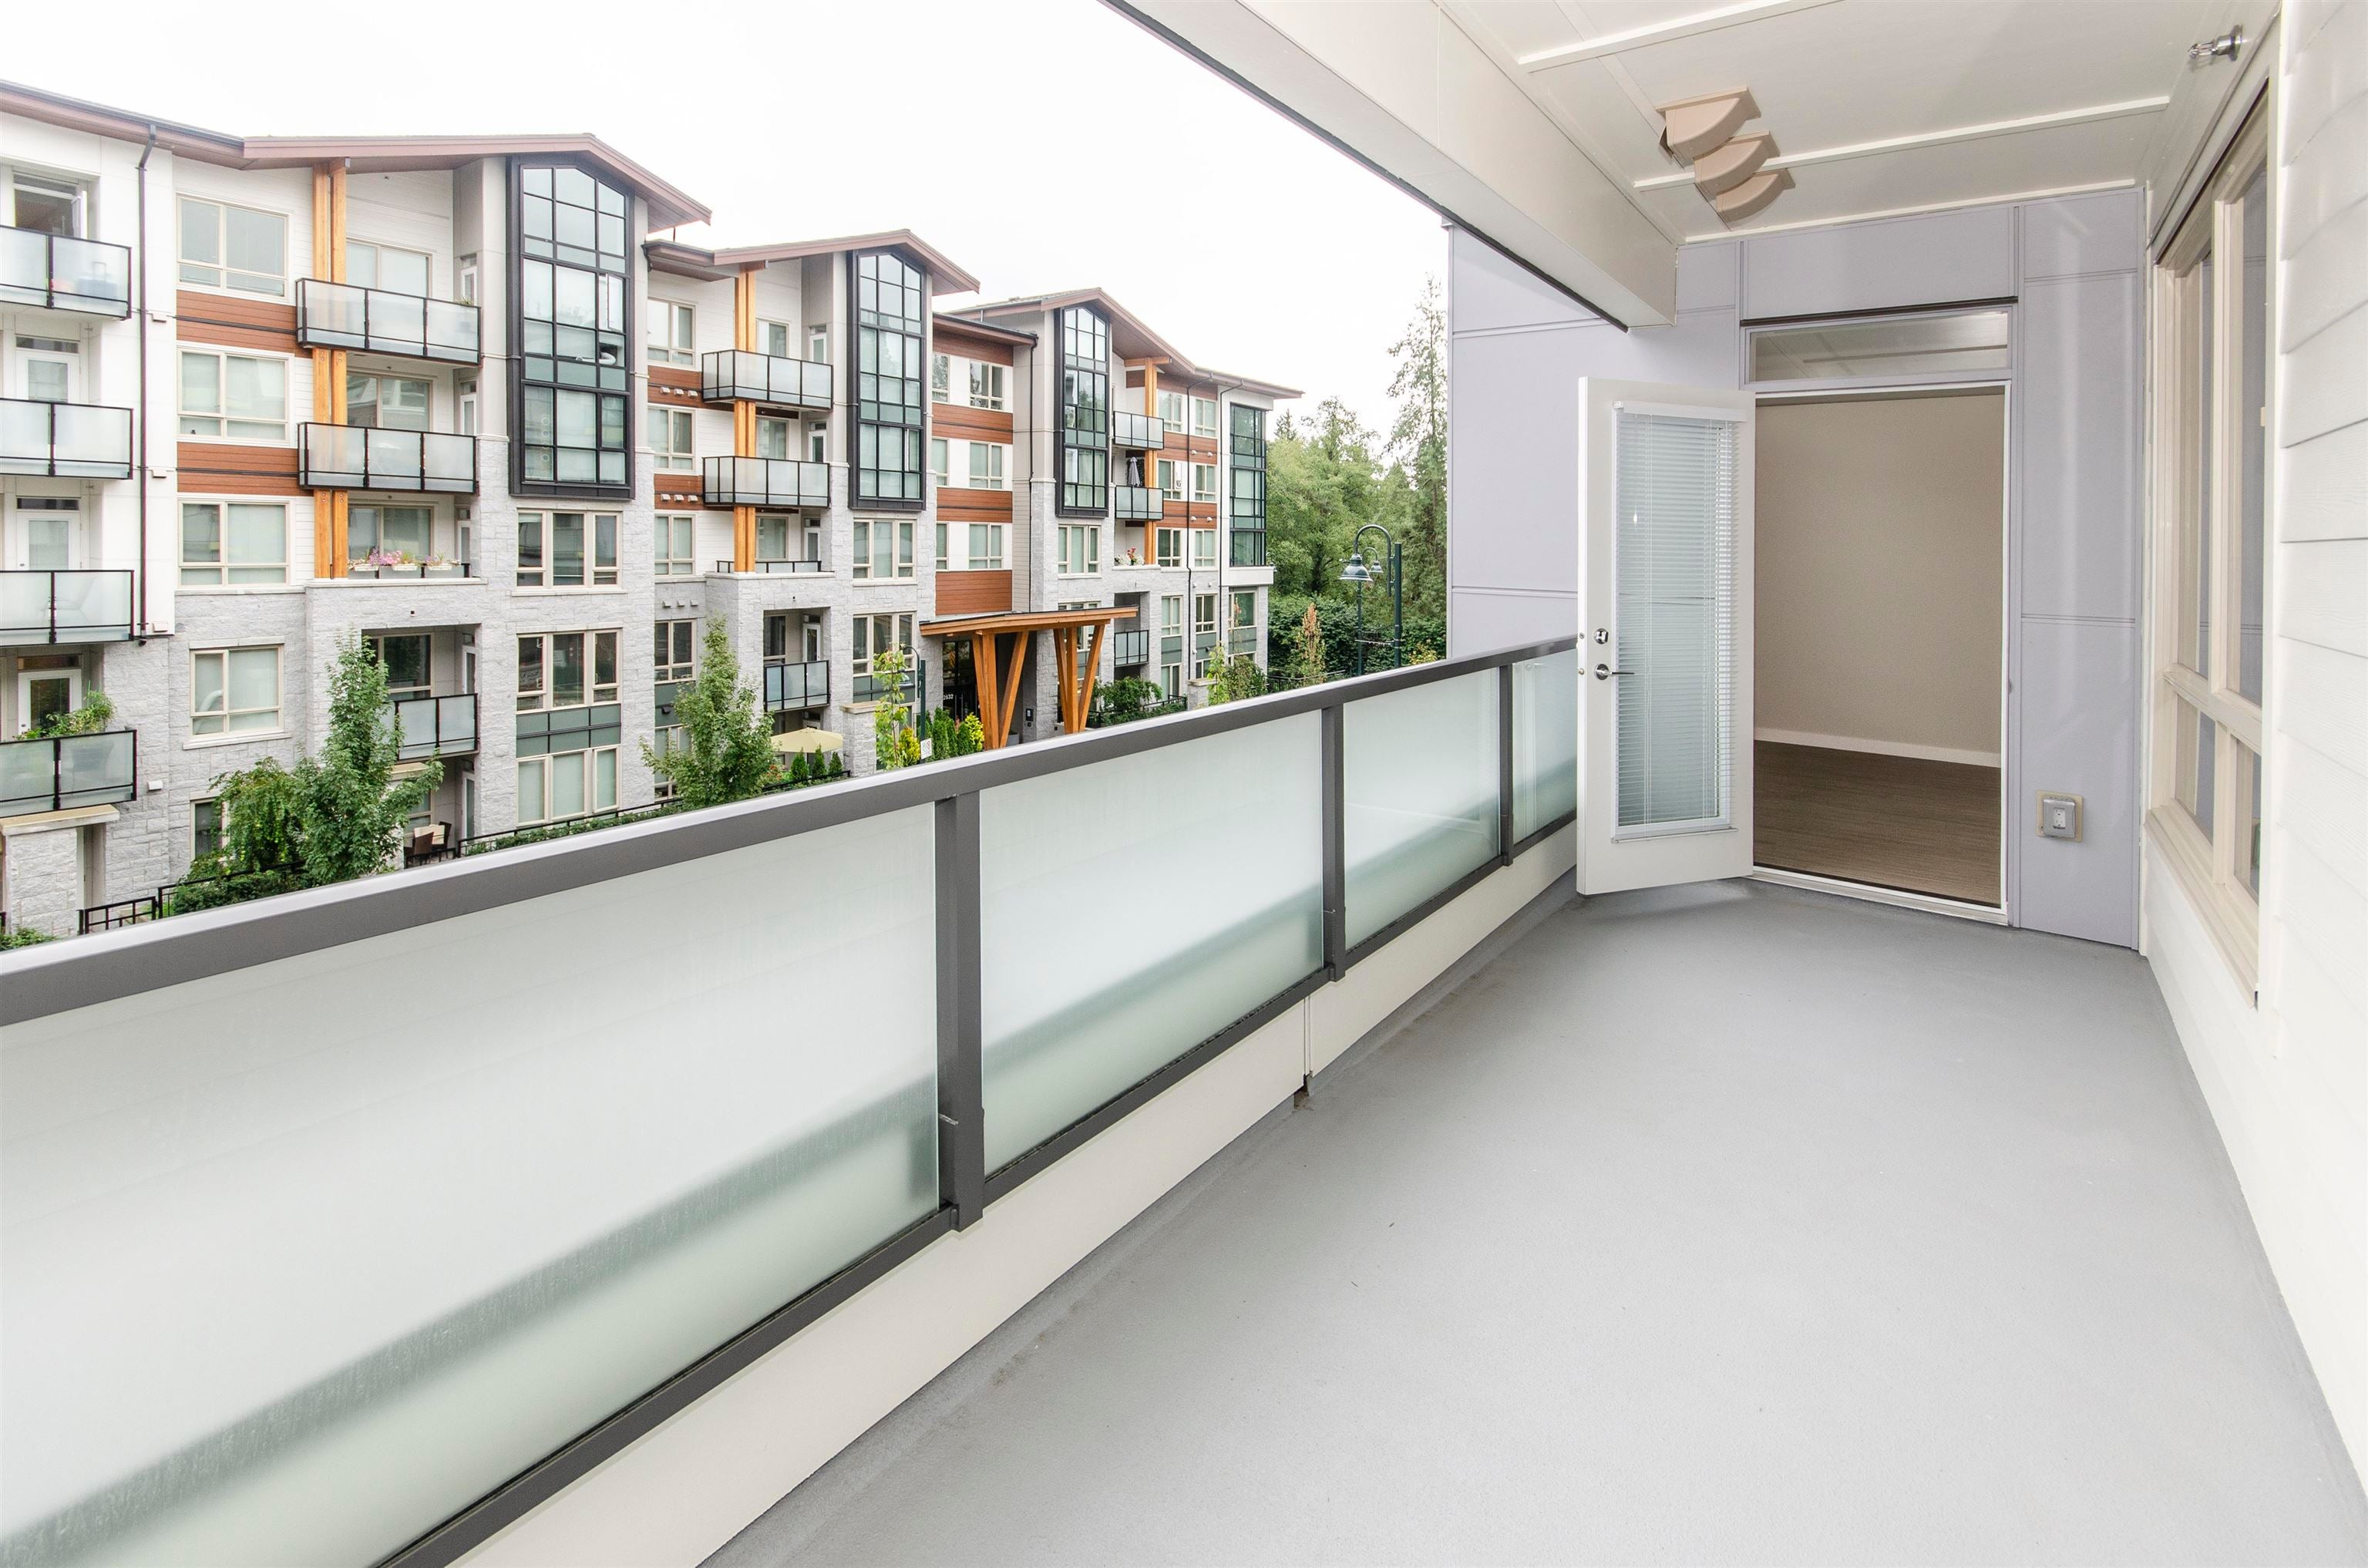 205 2651 LIBRARY LANE - Lynn Valley Apartment/Condo for sale, 2 Bedrooms (R2620222) - #23